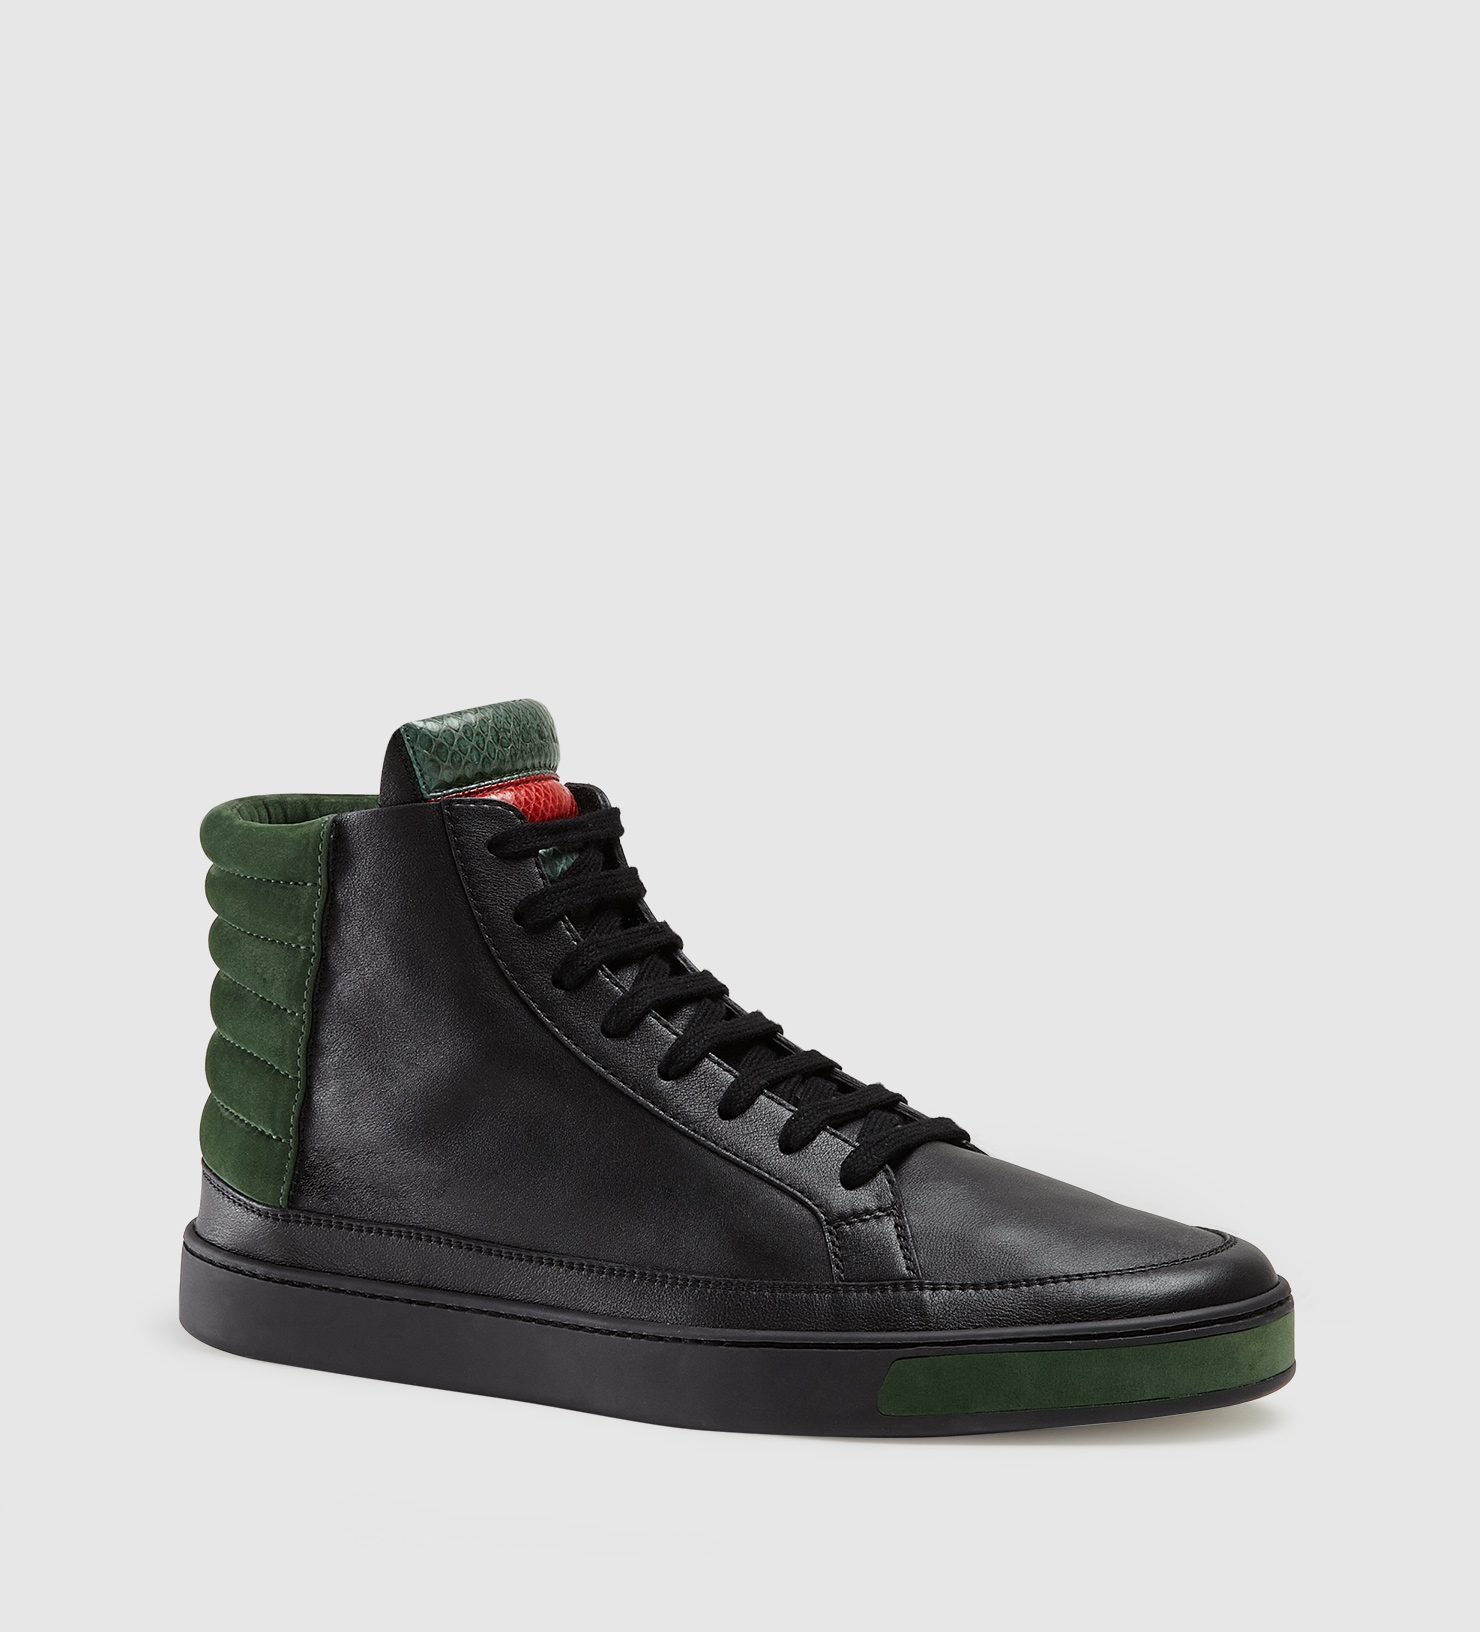 lyst gucci leather suede and ayers snake high top. Black Bedroom Furniture Sets. Home Design Ideas